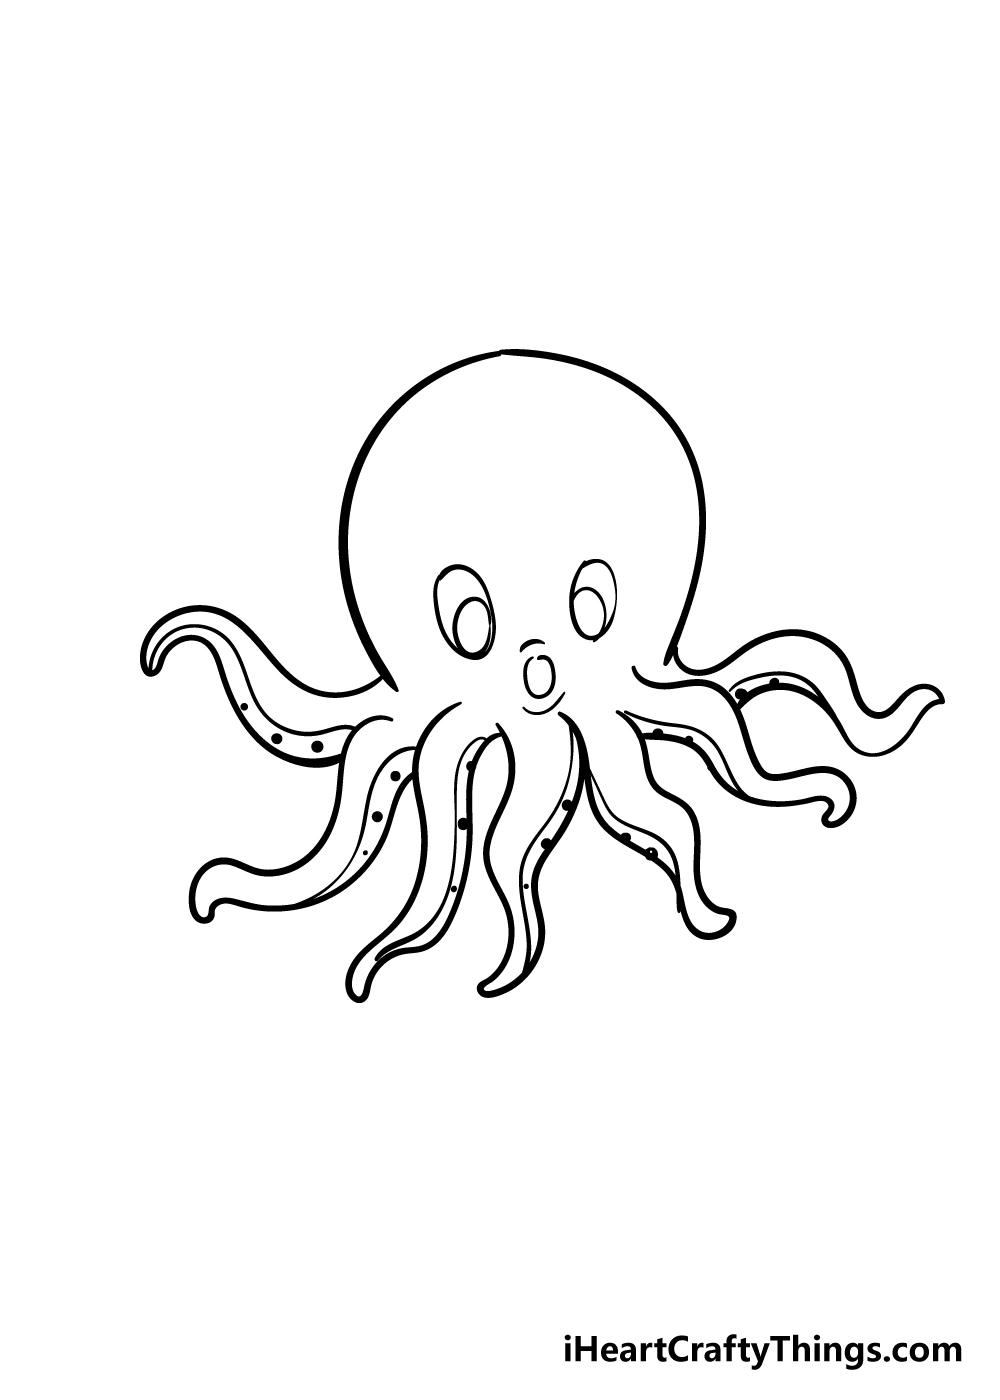 octopus drawing step 7